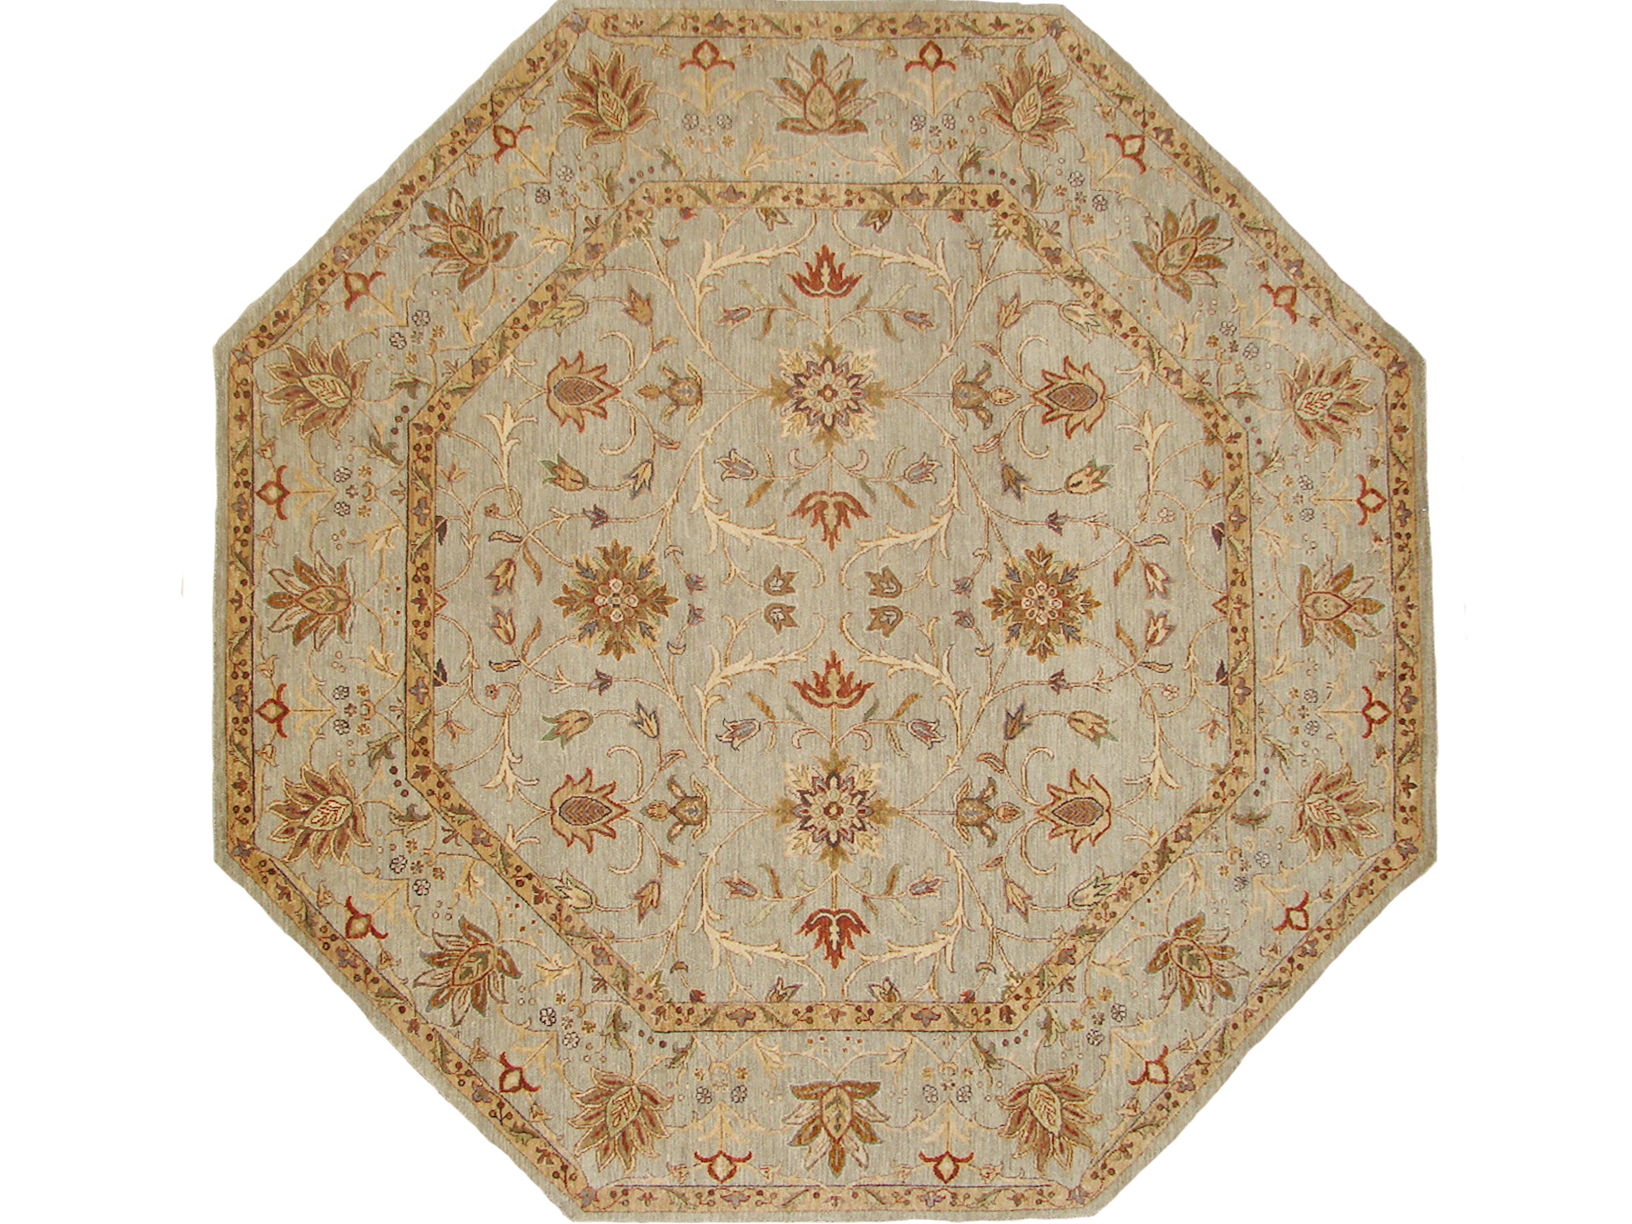 8 ft. Round & Square Traditional Hand Knotted Wool Area Rug - MR18743